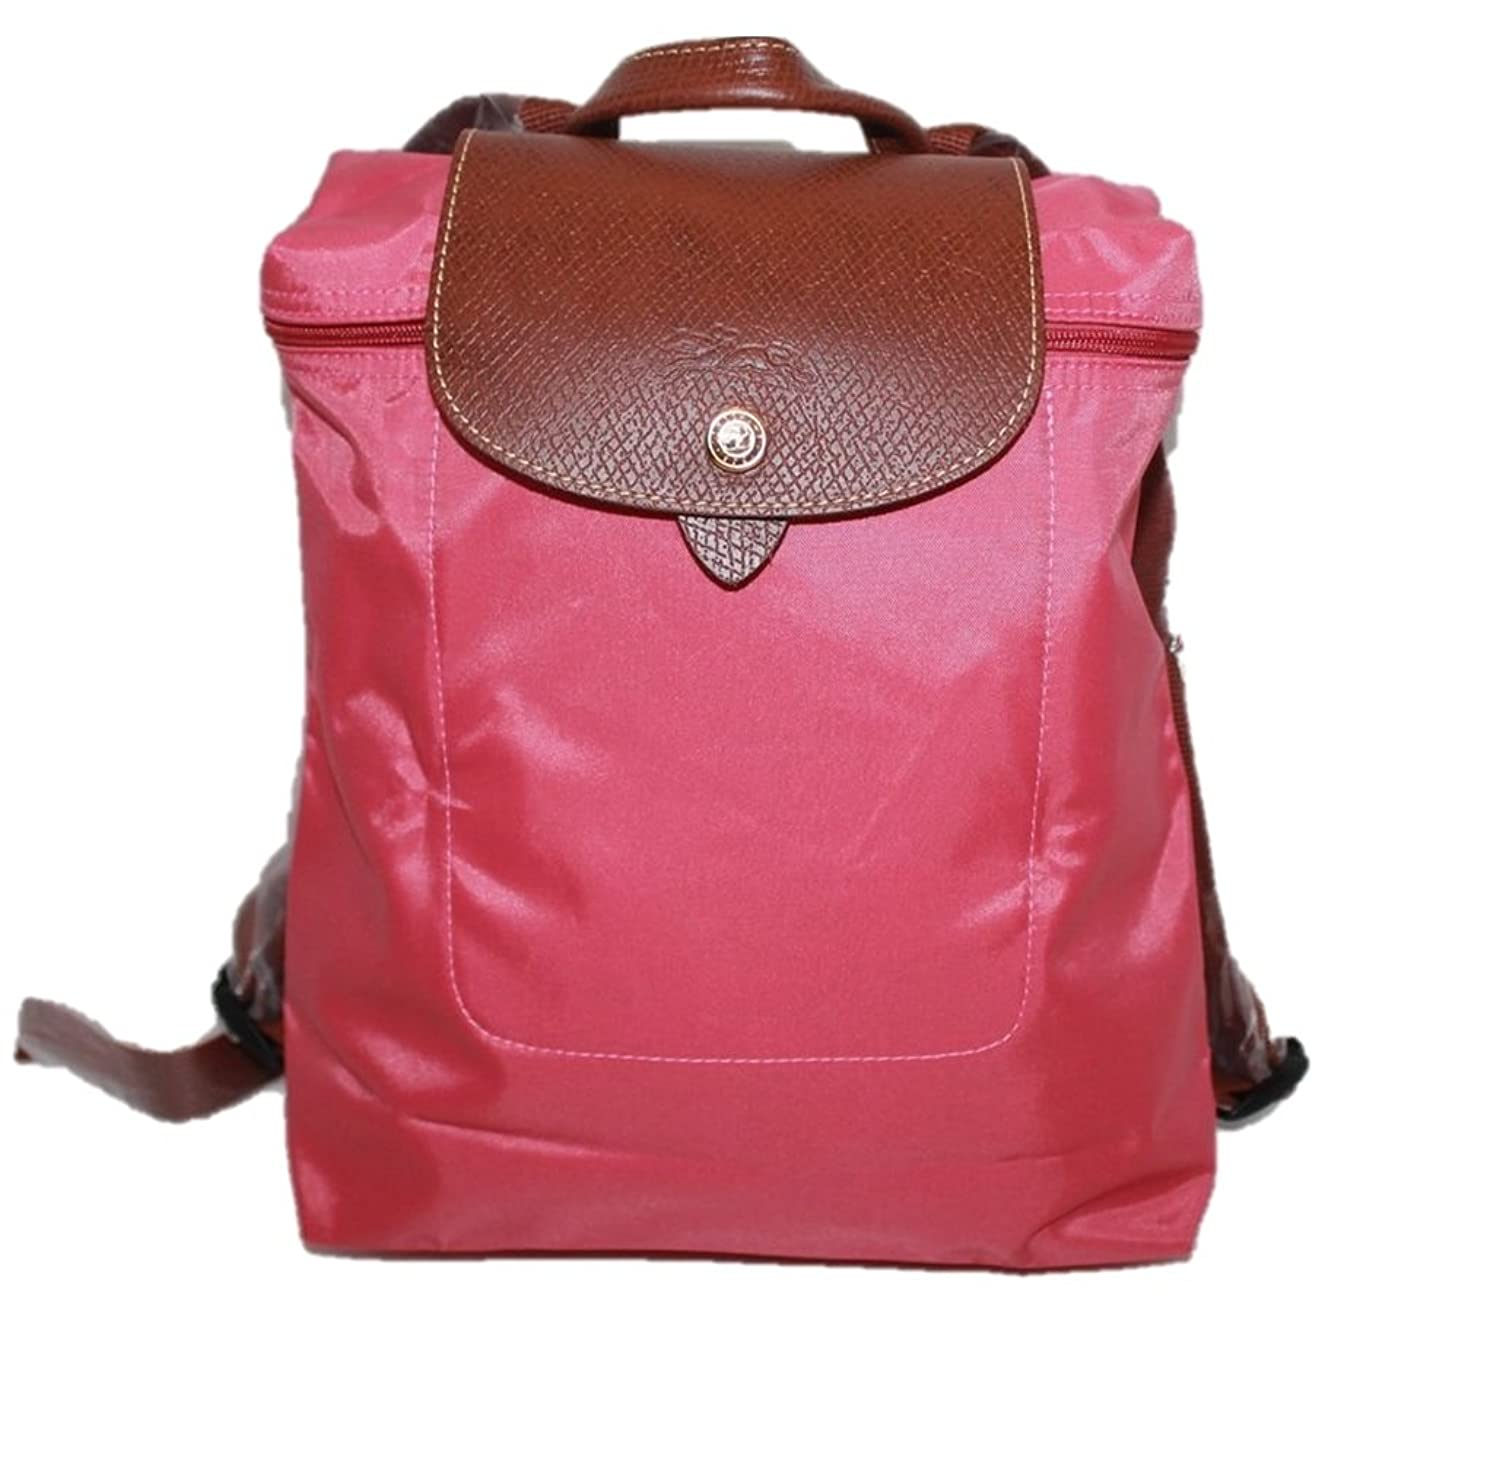 Longchamp Lid Backpack - Le Pliage, Malabar Pink \\u0026middot; Best Buy Light Longchamp